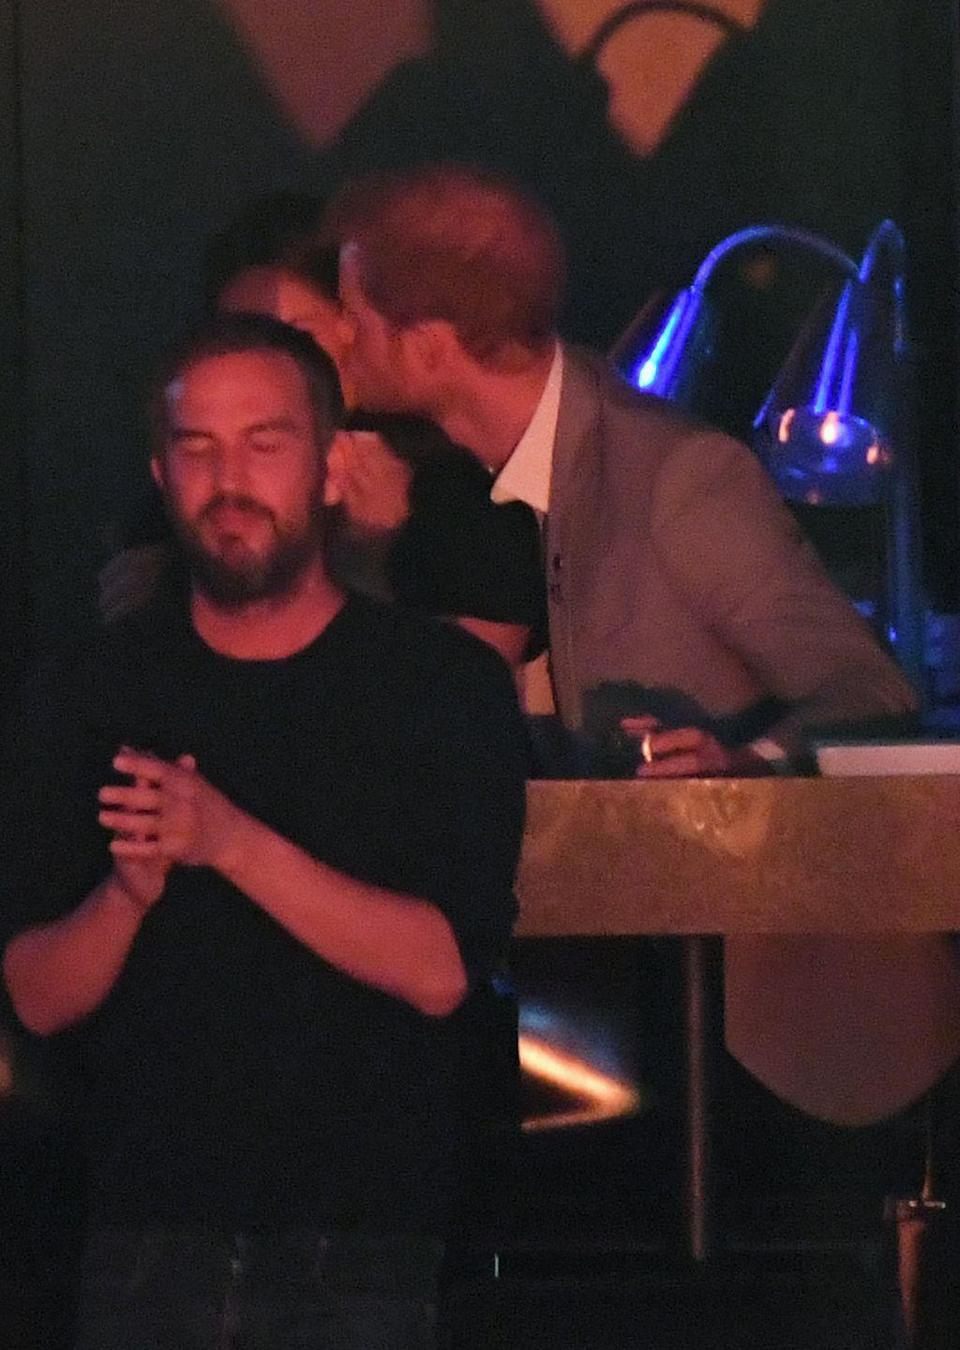 <p>After a year of dating, Prince Harry couldn't help but sneak a kiss with his girlfriend during the Invictus Games Toronto 2017 celebrations in September. Their mutual friend Markus Anderson was also in attendance but couldn't quite hide their smooch. </p>